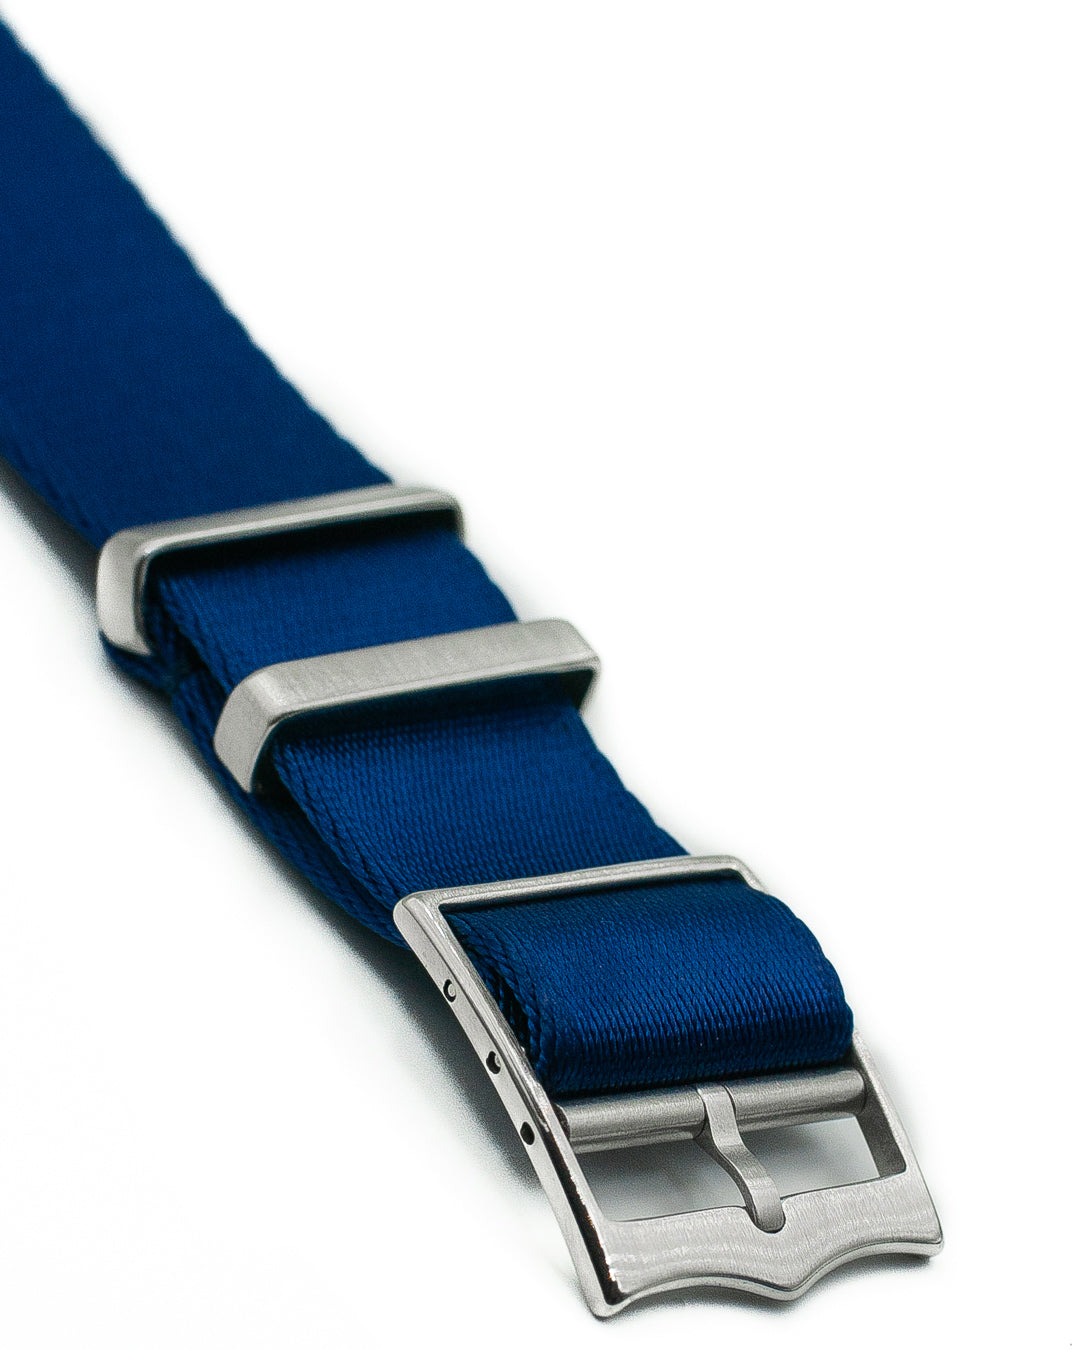 Blackbay Adjustable - Blue